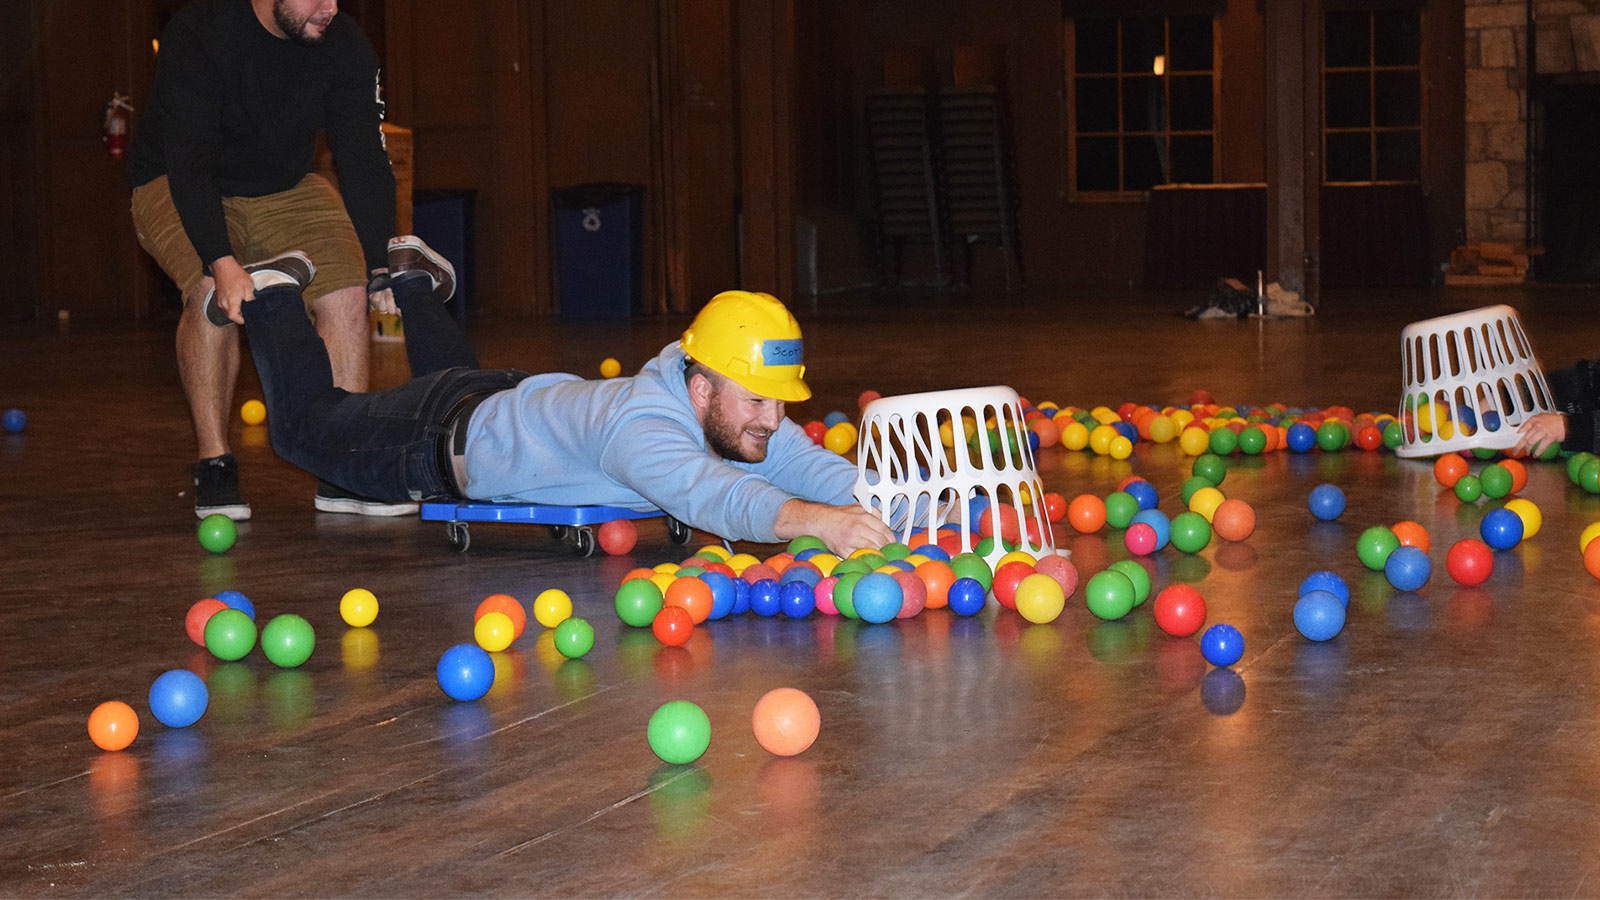 Get creative with your next team building game